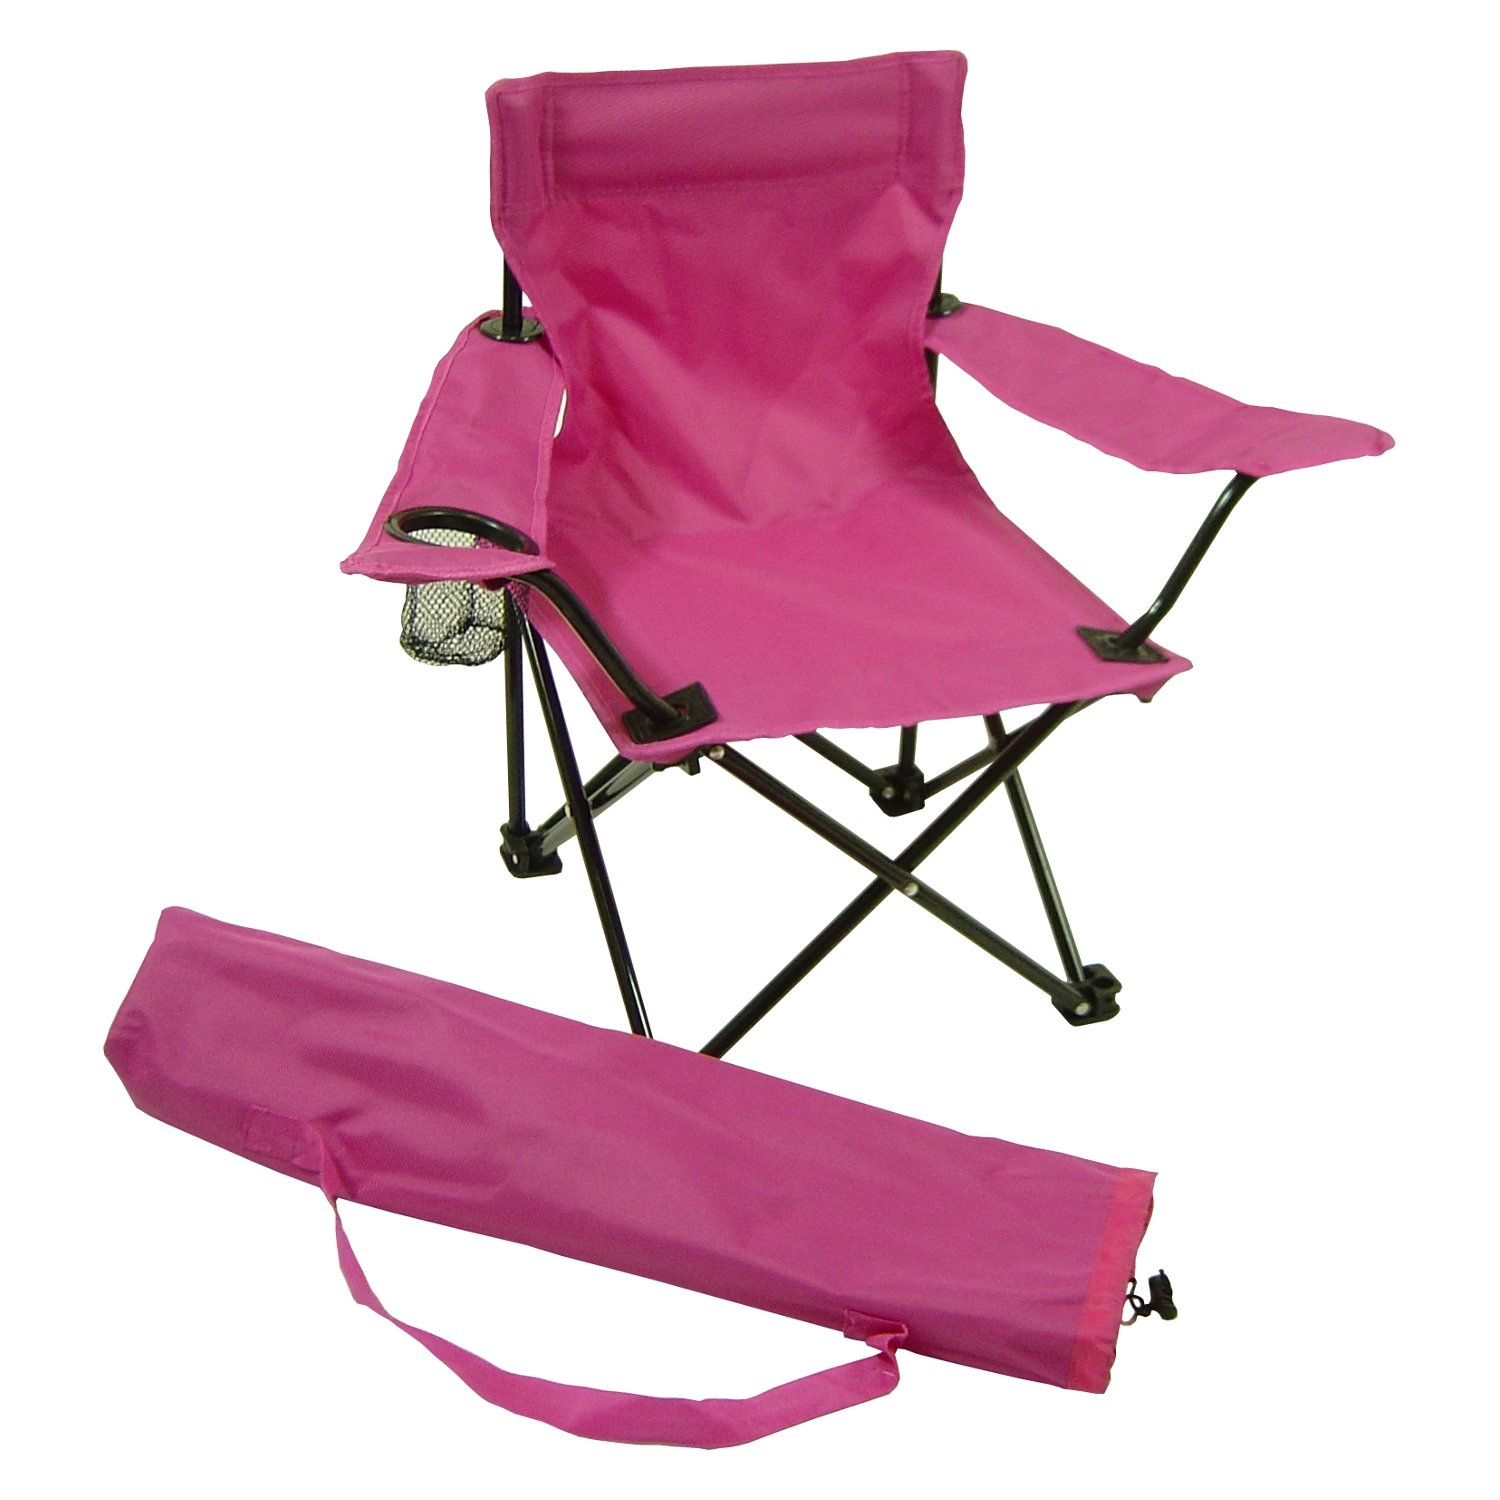 Redmon for Kids Kids Folding Camp Chair, Hot Pink by Redmon